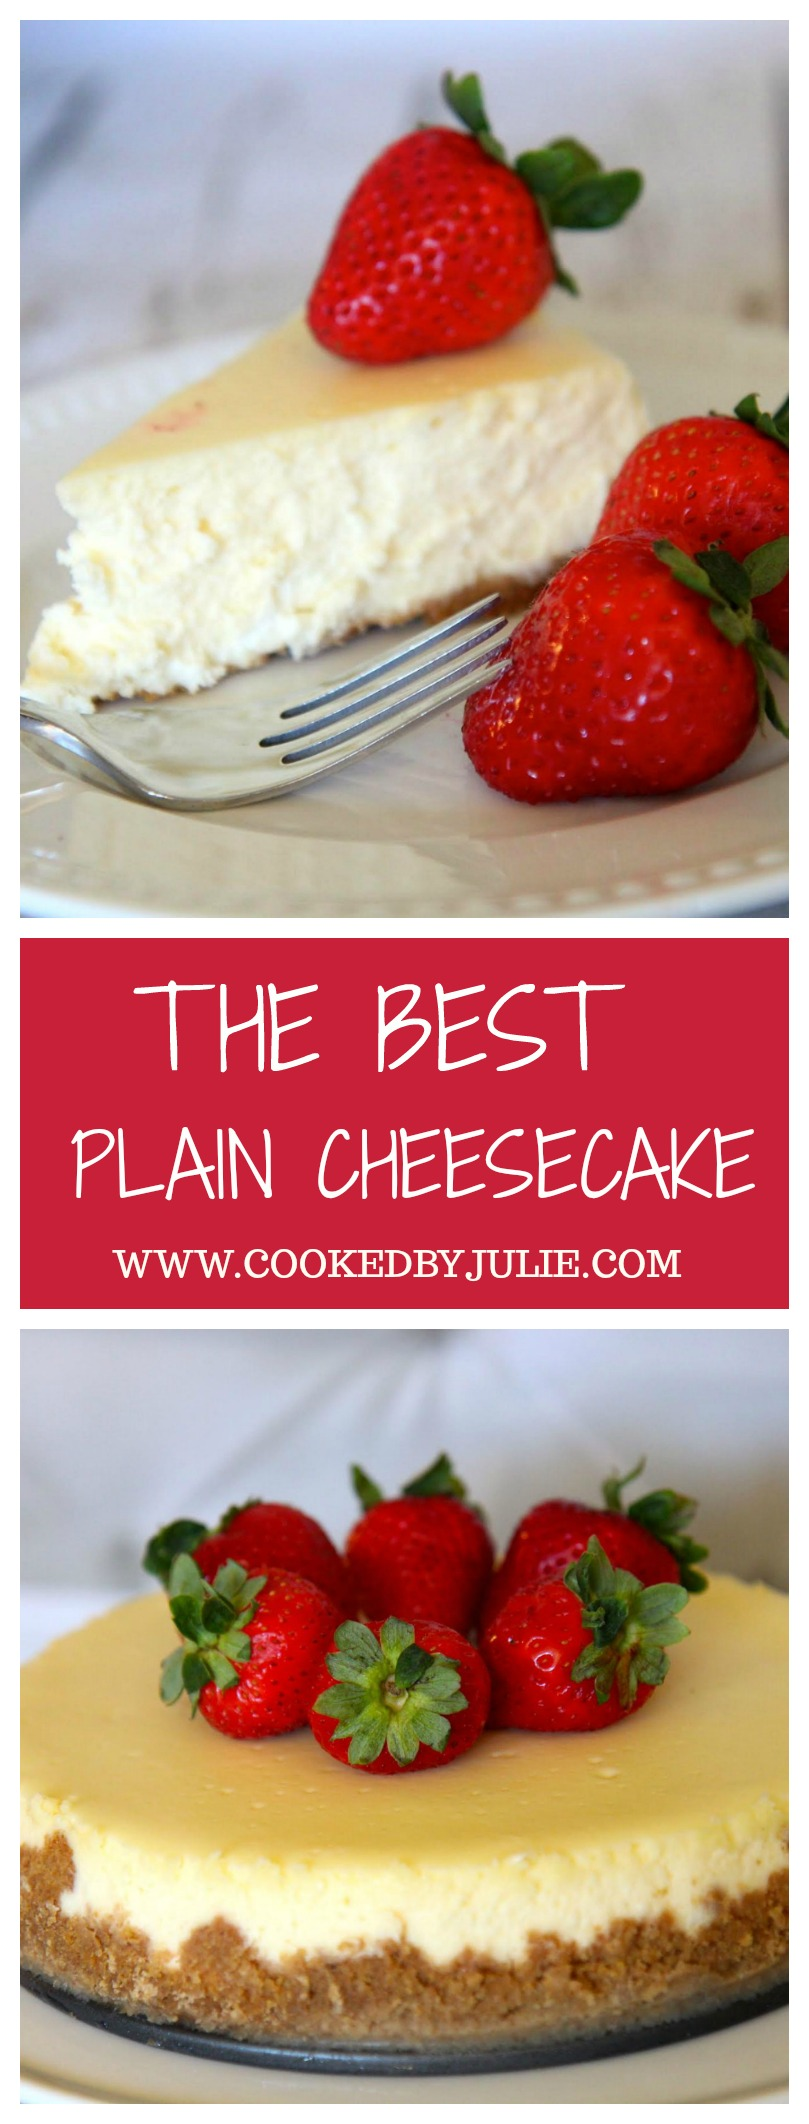 Plain Cheesecake | Cooked by Julie